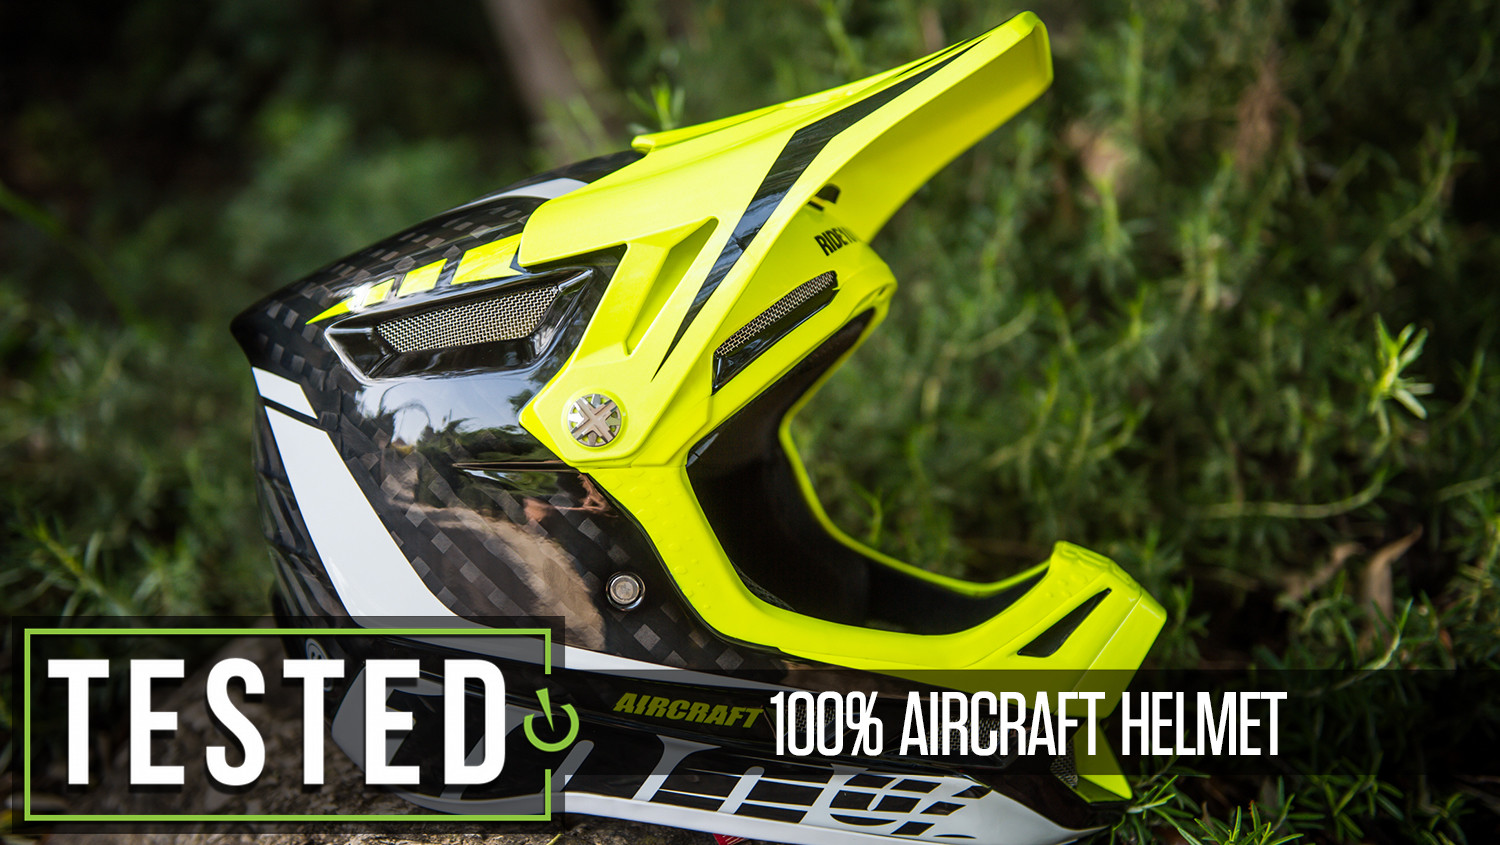 Tested: 100% Aircraft Fullface Helmet